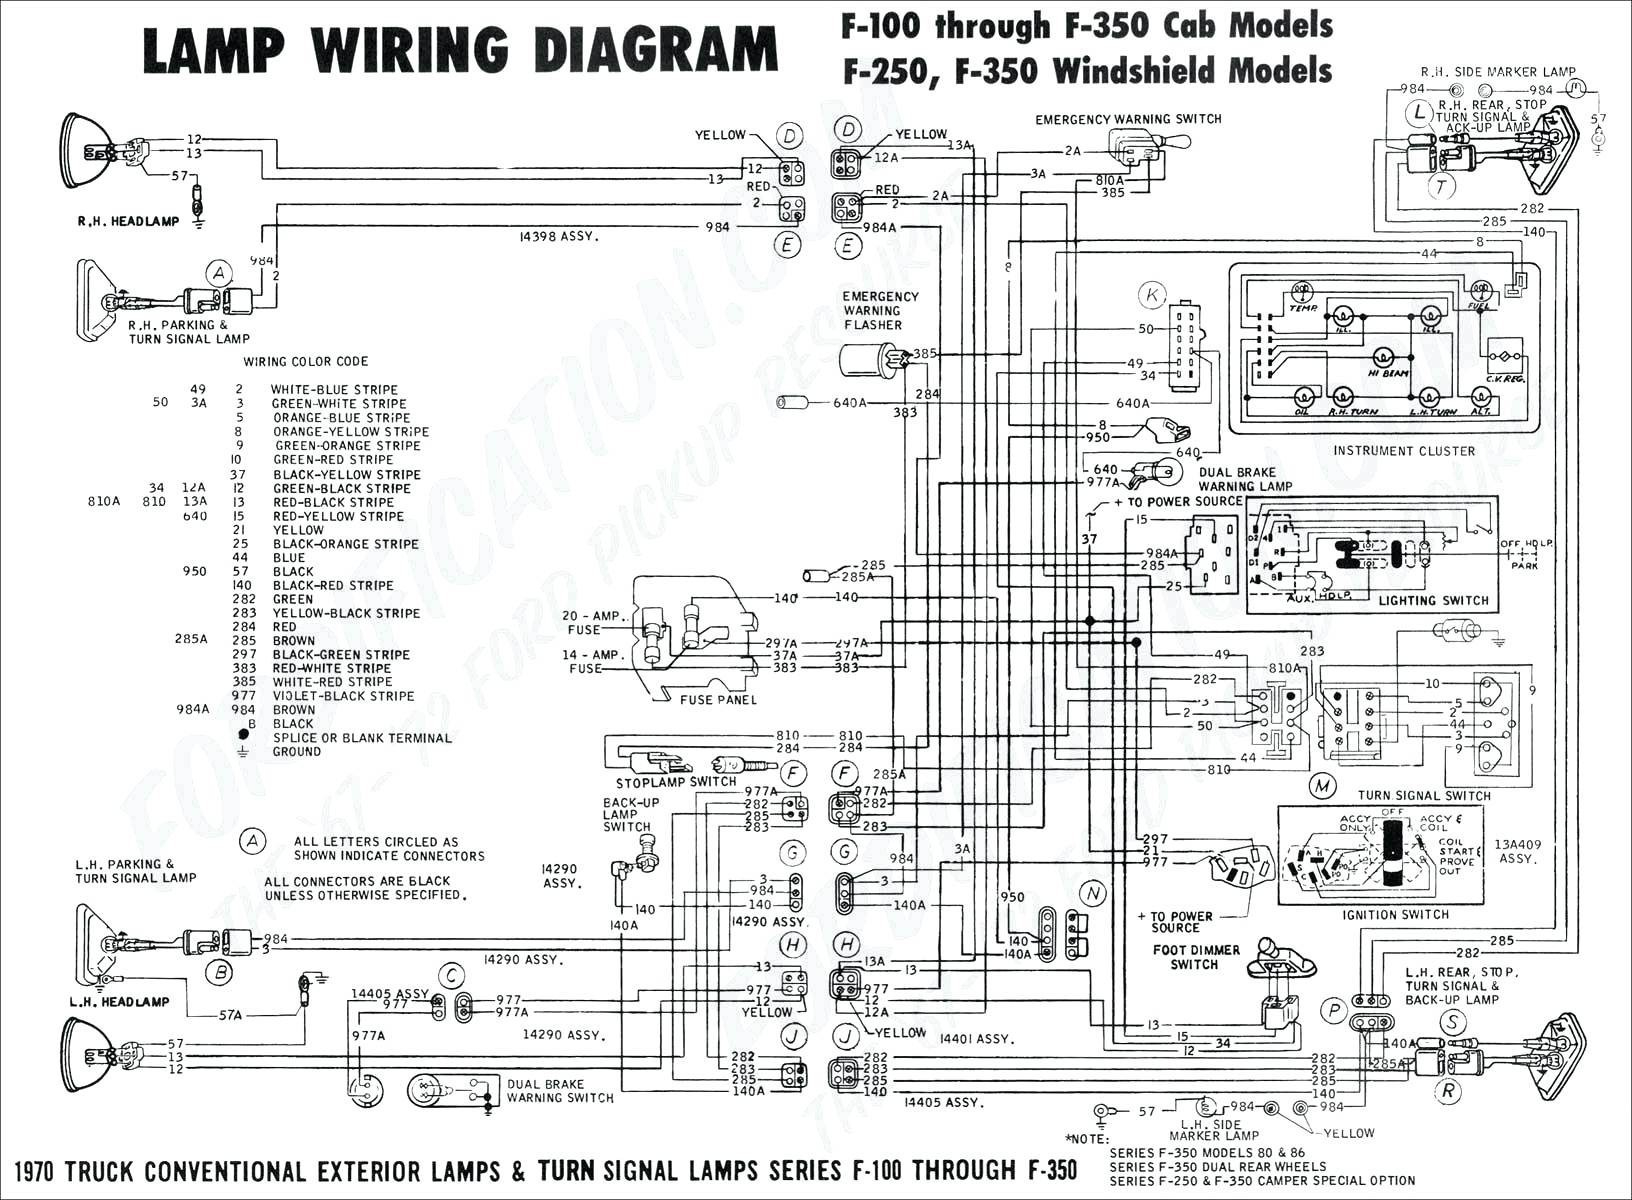 2007 Dodge Ram 1500 Brake Light Wiring Diagram Sample